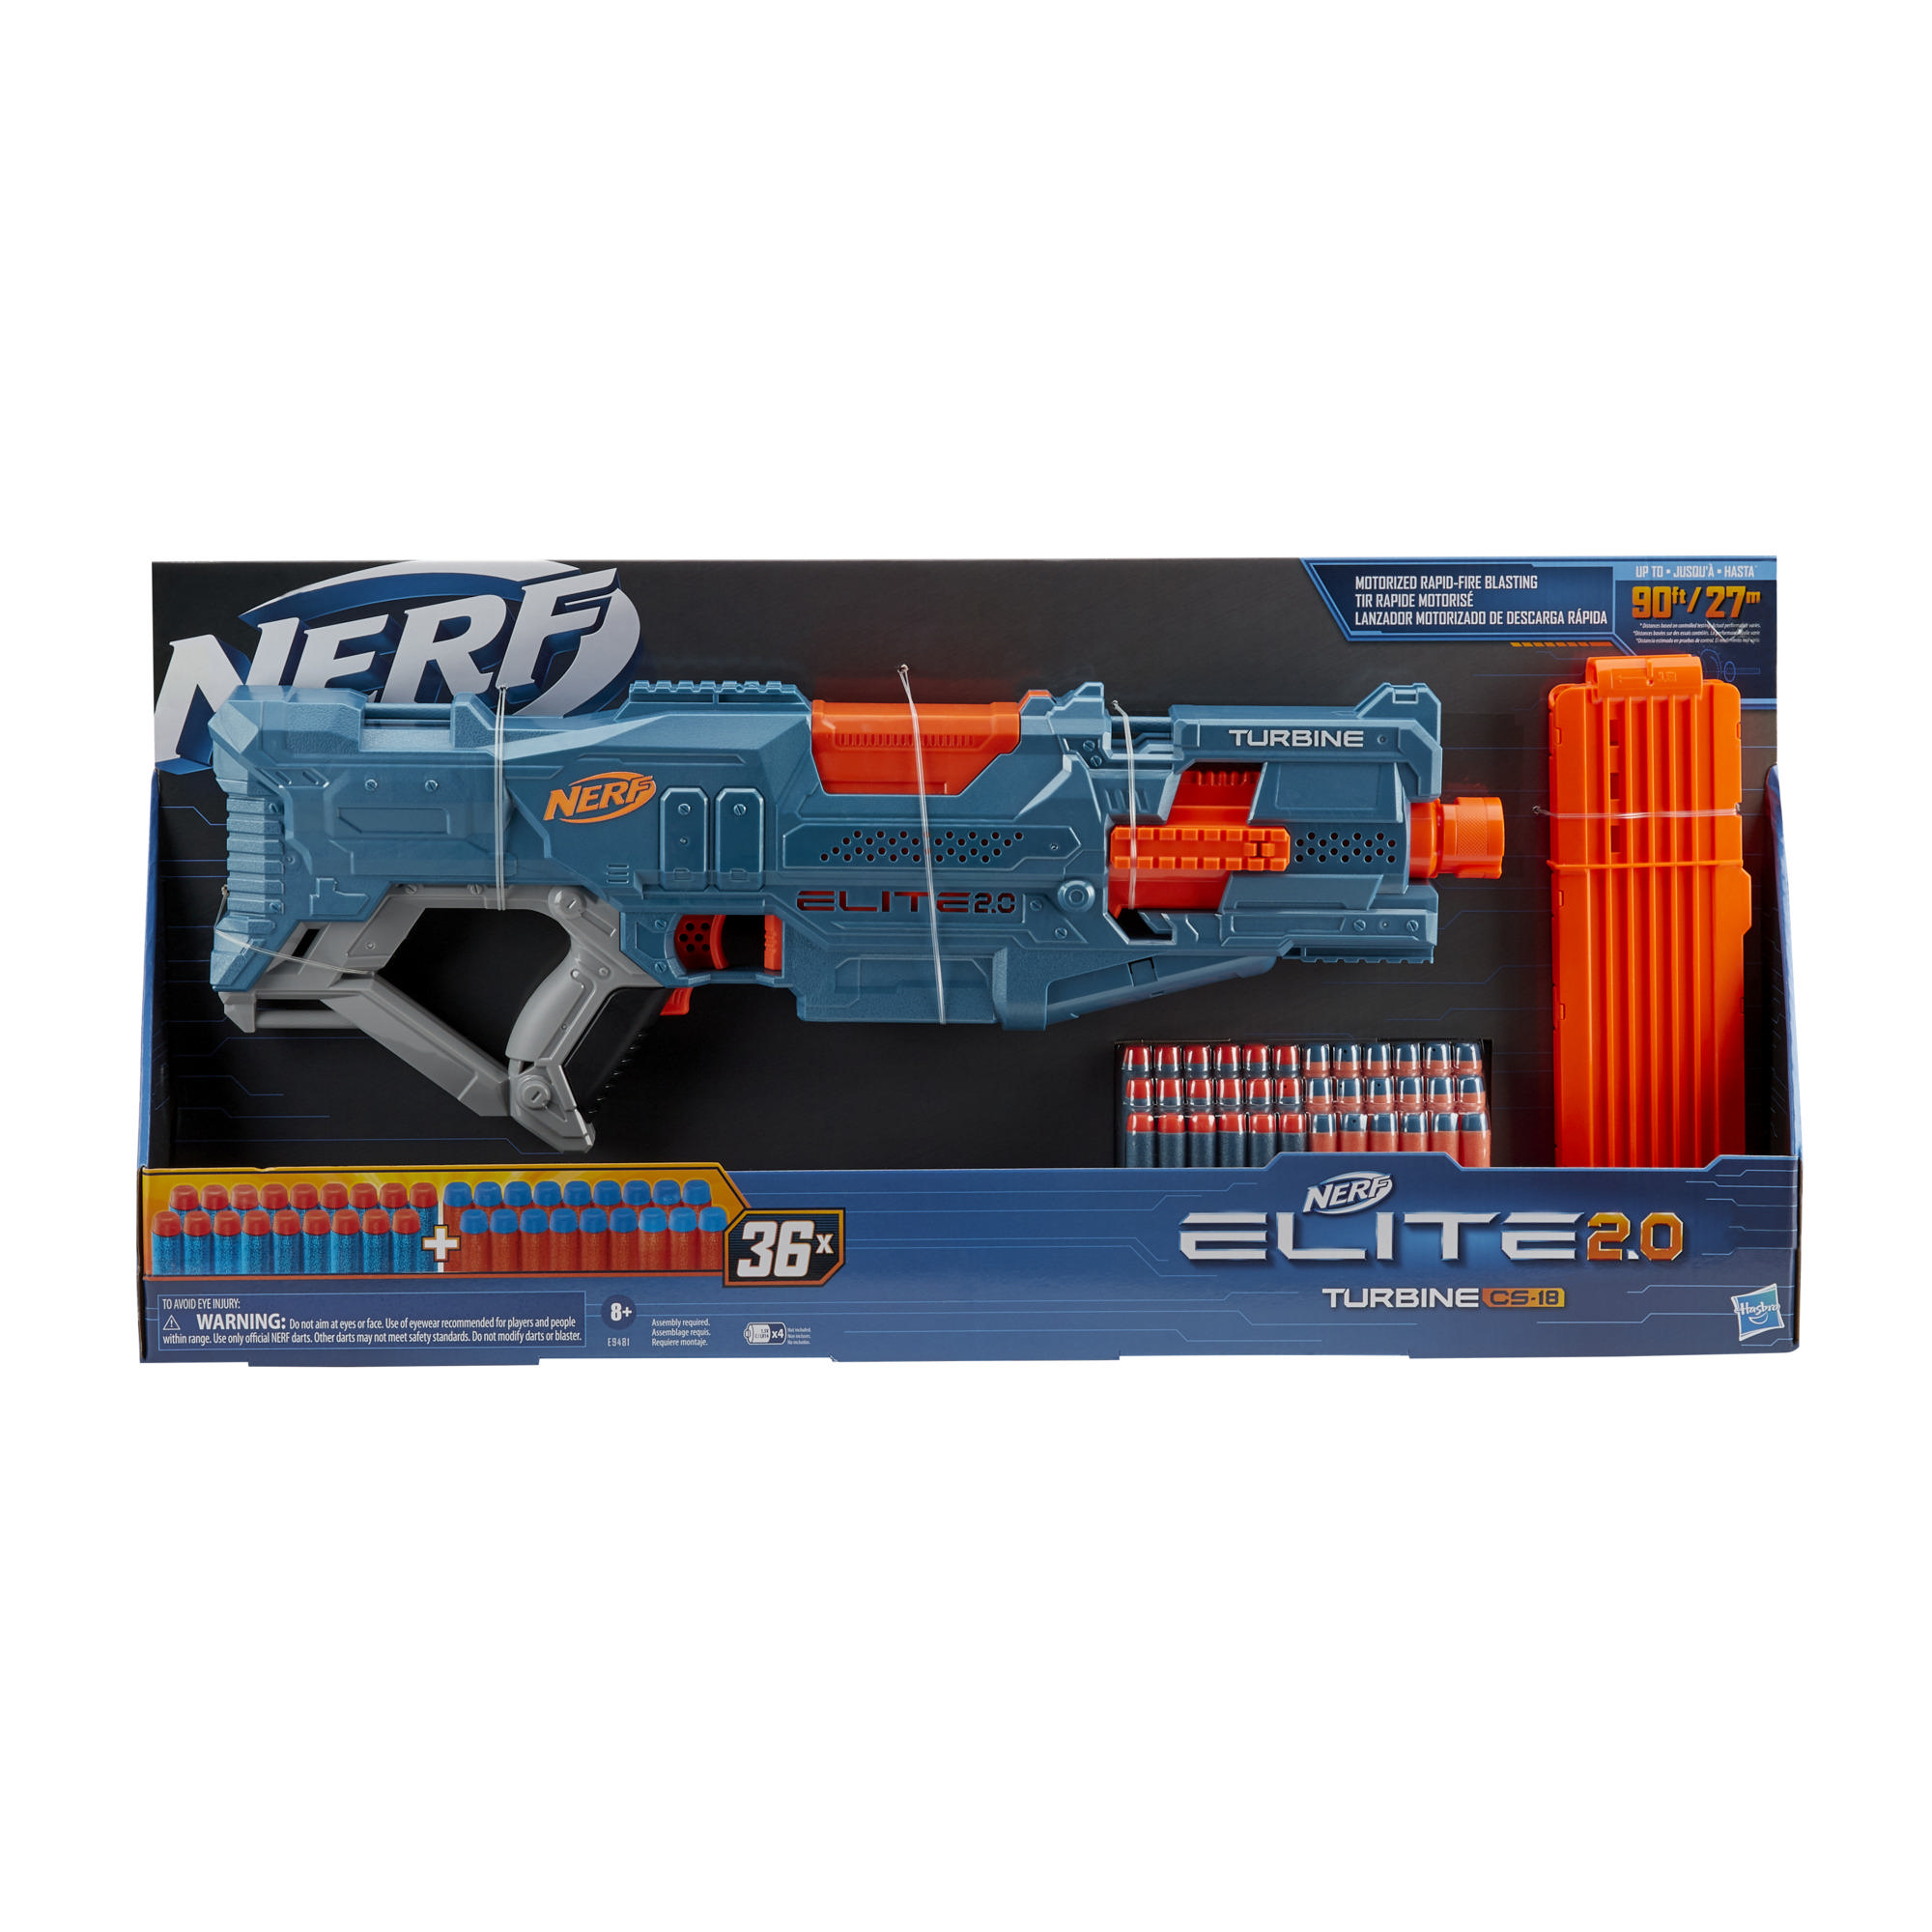 Nerf Elite 2.0 Turbine CS-18 Motorized Blaster, 36 Nerf Darts, 18-Dart Clip, Built-In Customizing Capabilities